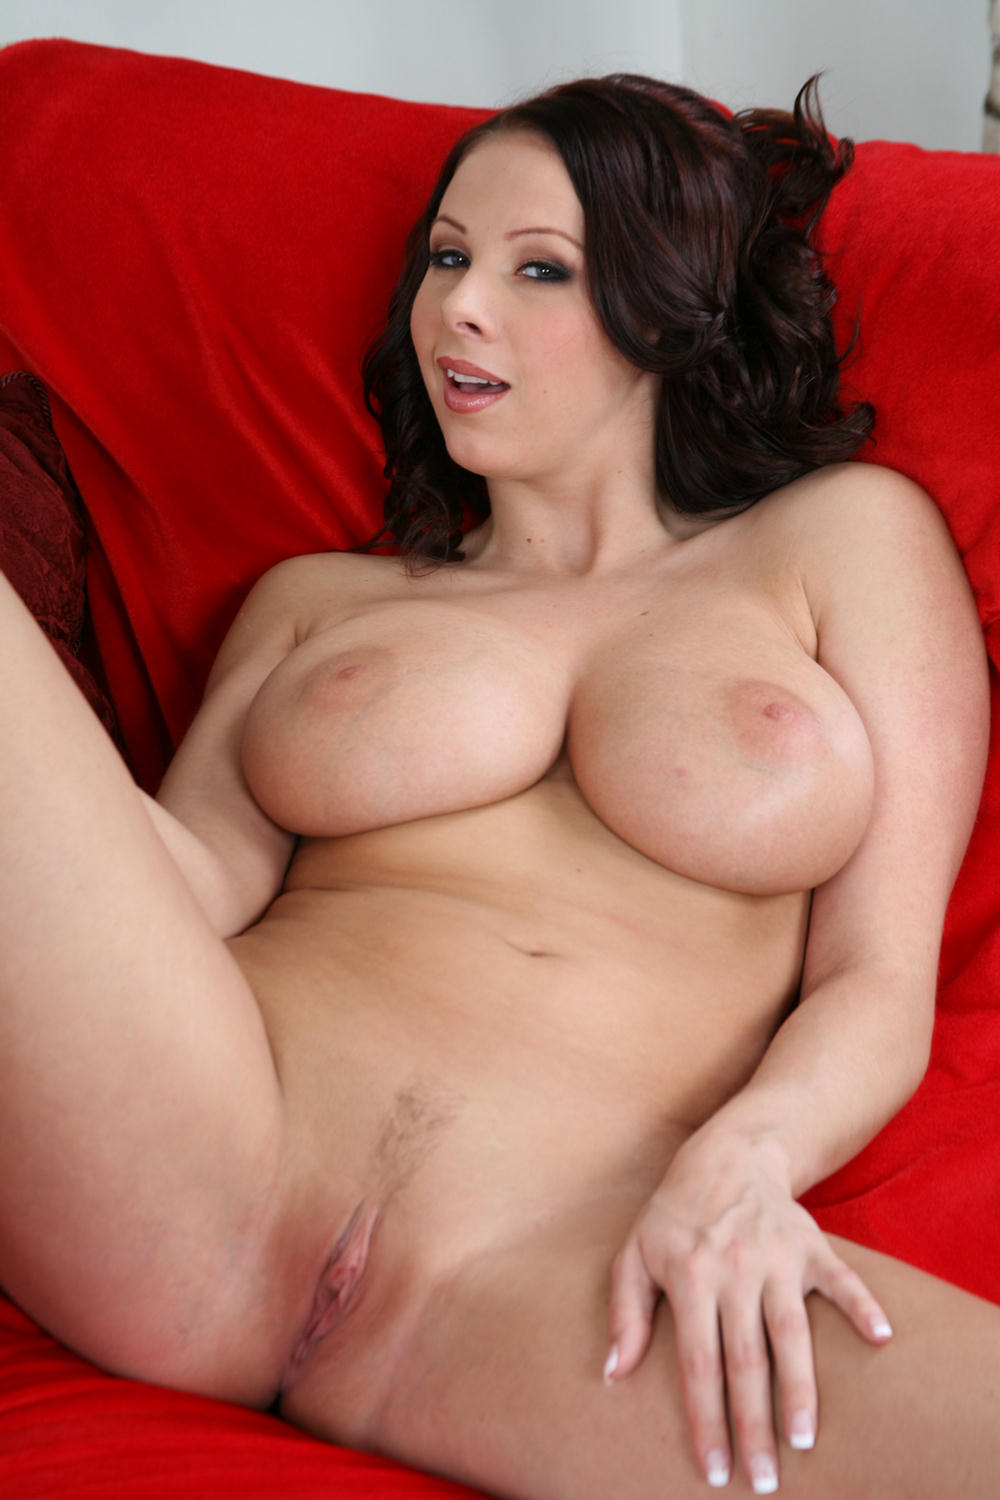 Accept. The Gianna michaels solo naked doubtful